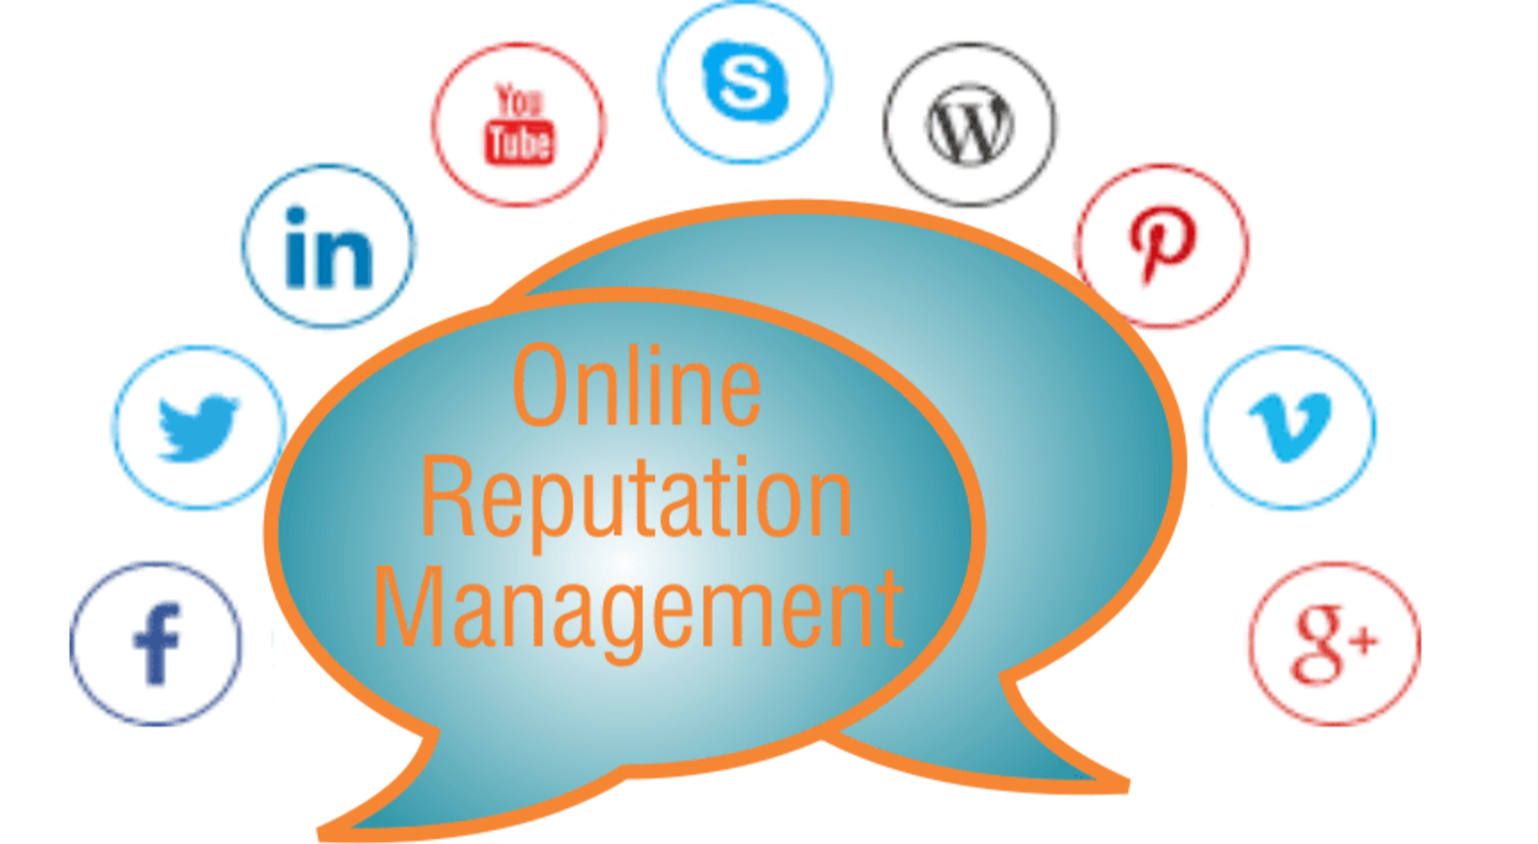 We are dealing with a number of celebrities, politicians, businessman, and corporations that require our expertise to manage their reputations online, social media. Negative results, incorrect information, and slander can tarnish one's reputation irreversibly. we believe controlling your digital footprint is imperative. Online presence is more important and affecting their life